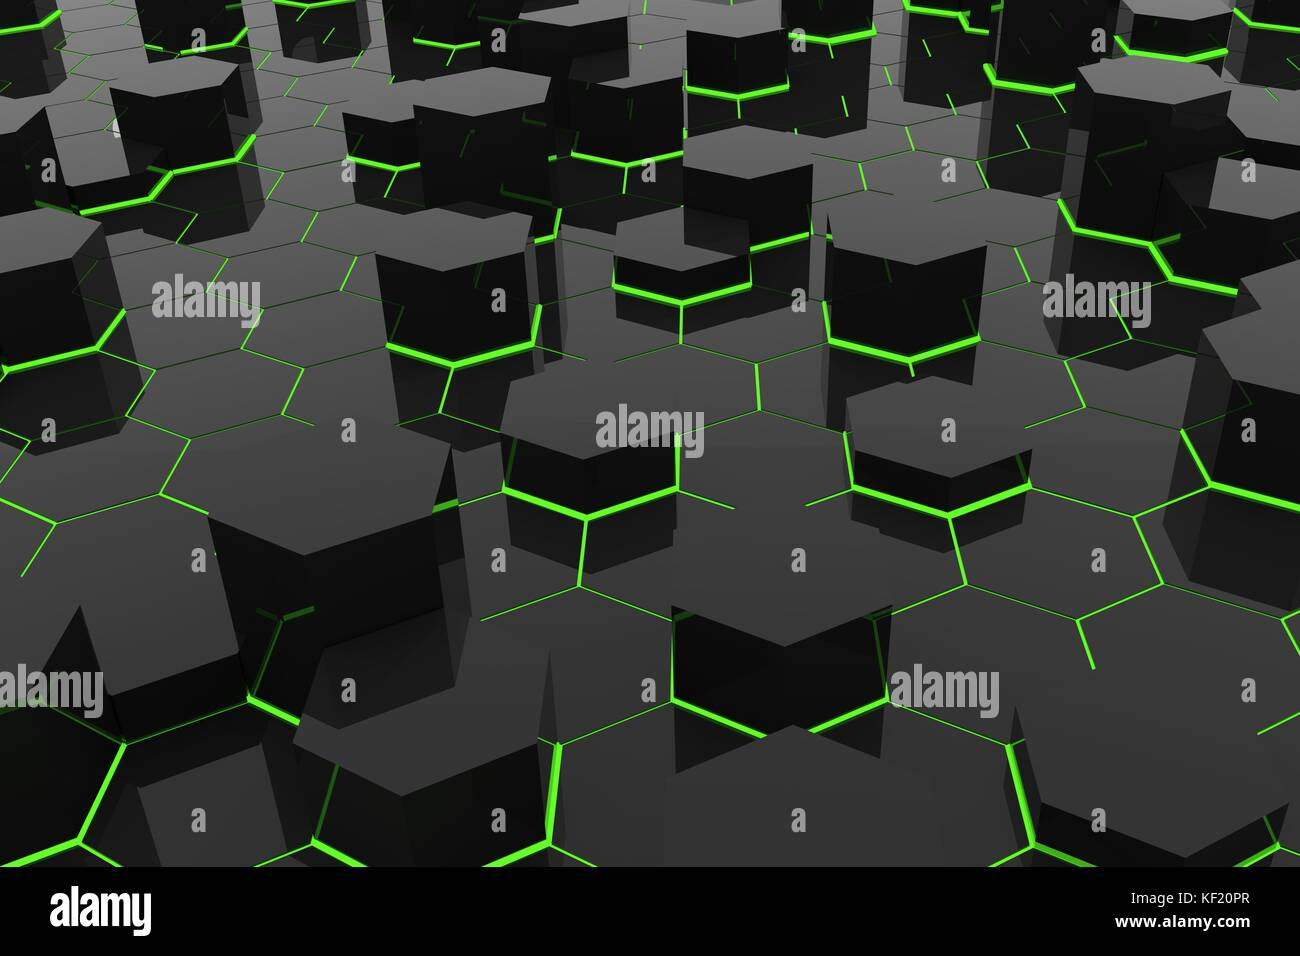 Green Light Abstract Background In Black Hexagons Geometric